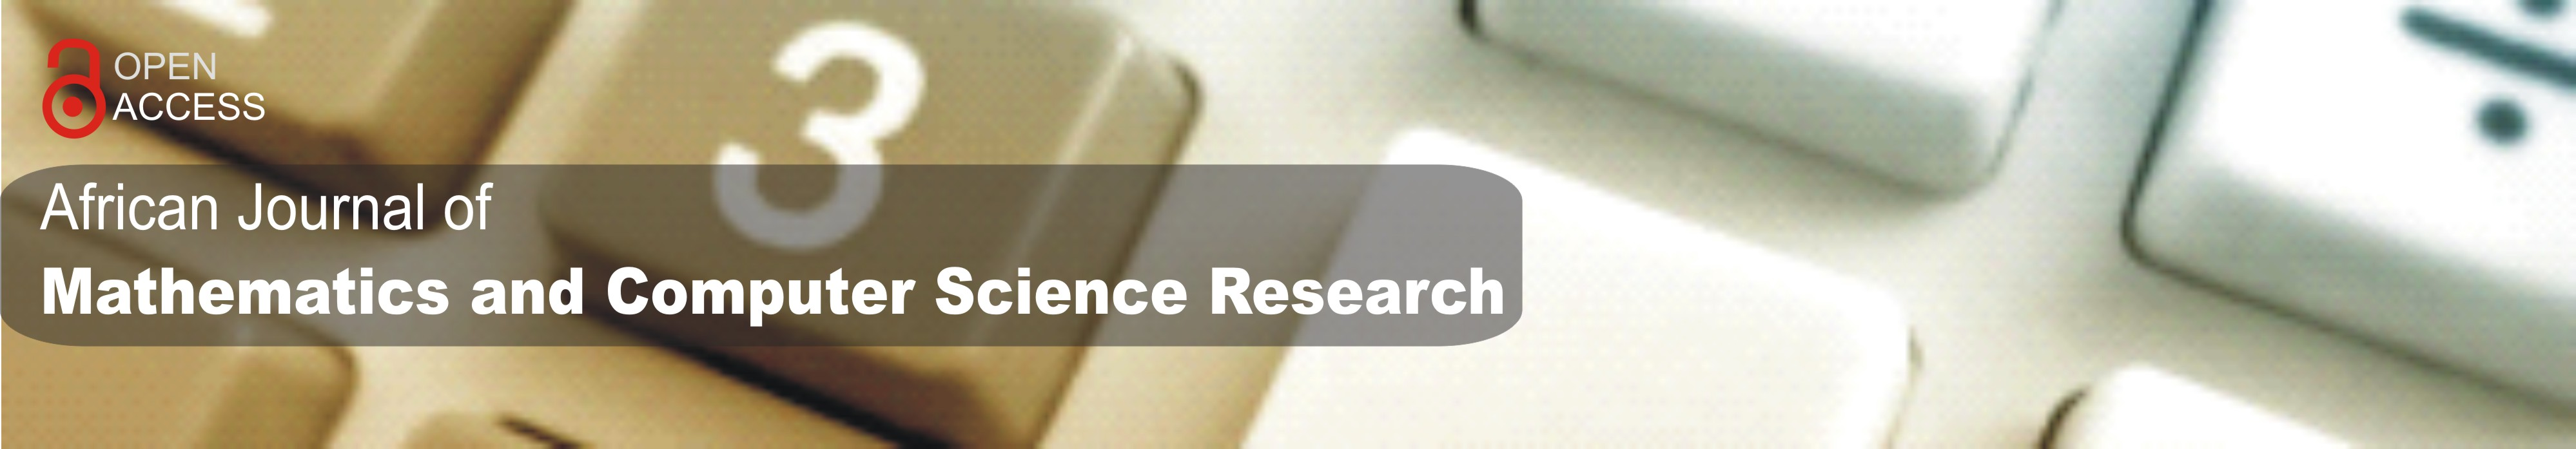 African Journal of Mathematics and Computer Science Research